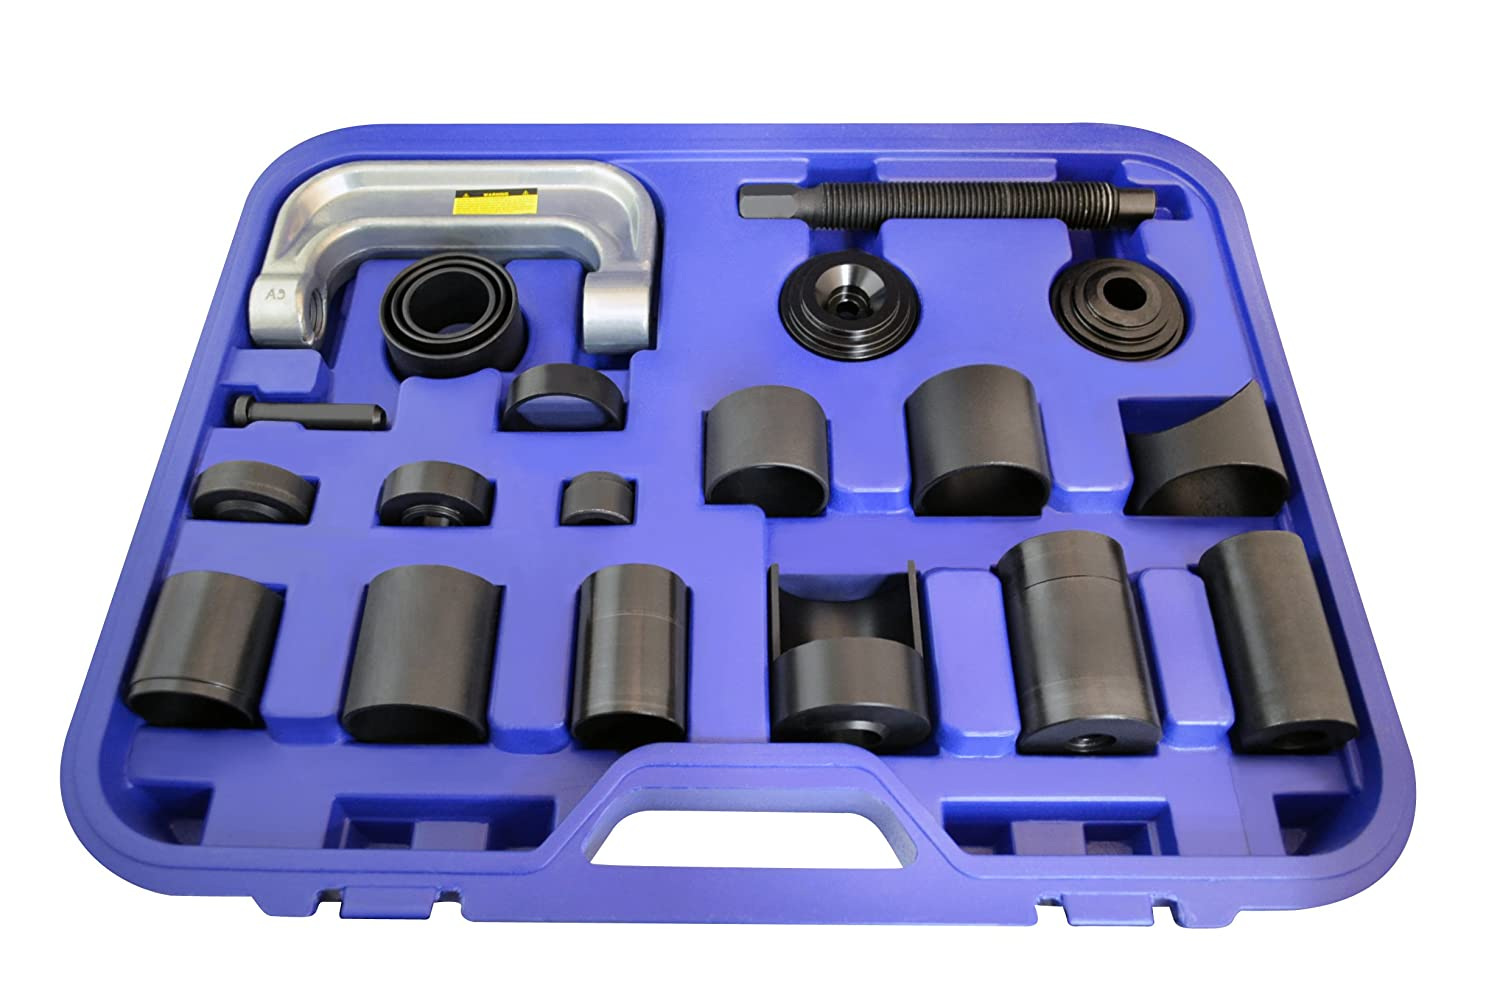 Astro Pneumatic 7897 Ball Joint Service Tool and Master Adapter Set Astro Pneumatic Tool Company